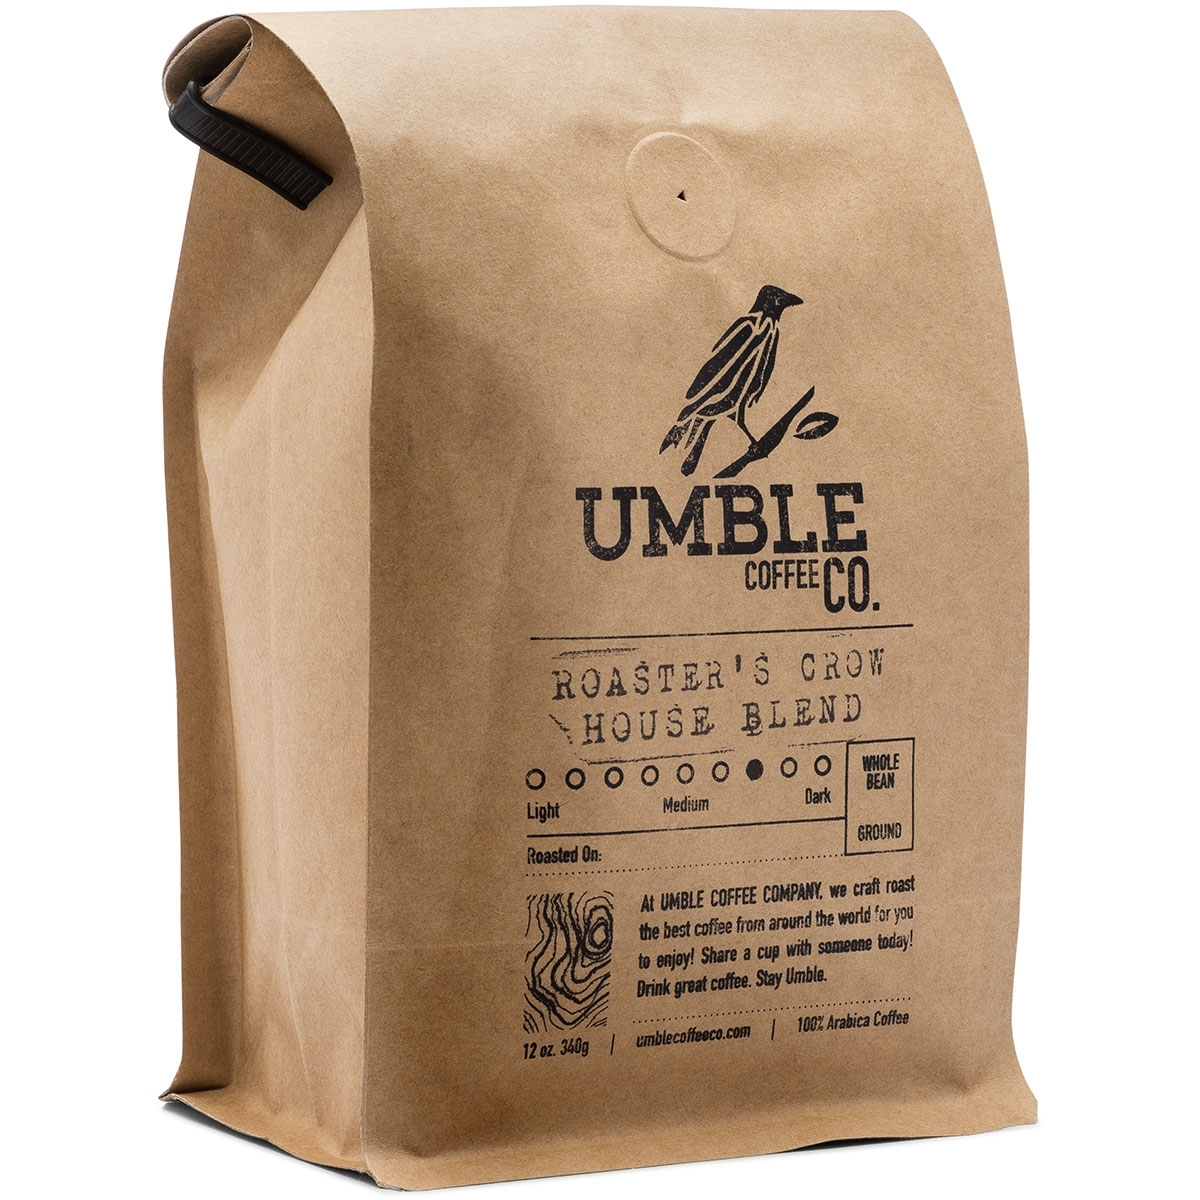 Roaster's Crow House Blend – Umble Coffee Co.® pertaining to House Blend Cafe Winter Garden